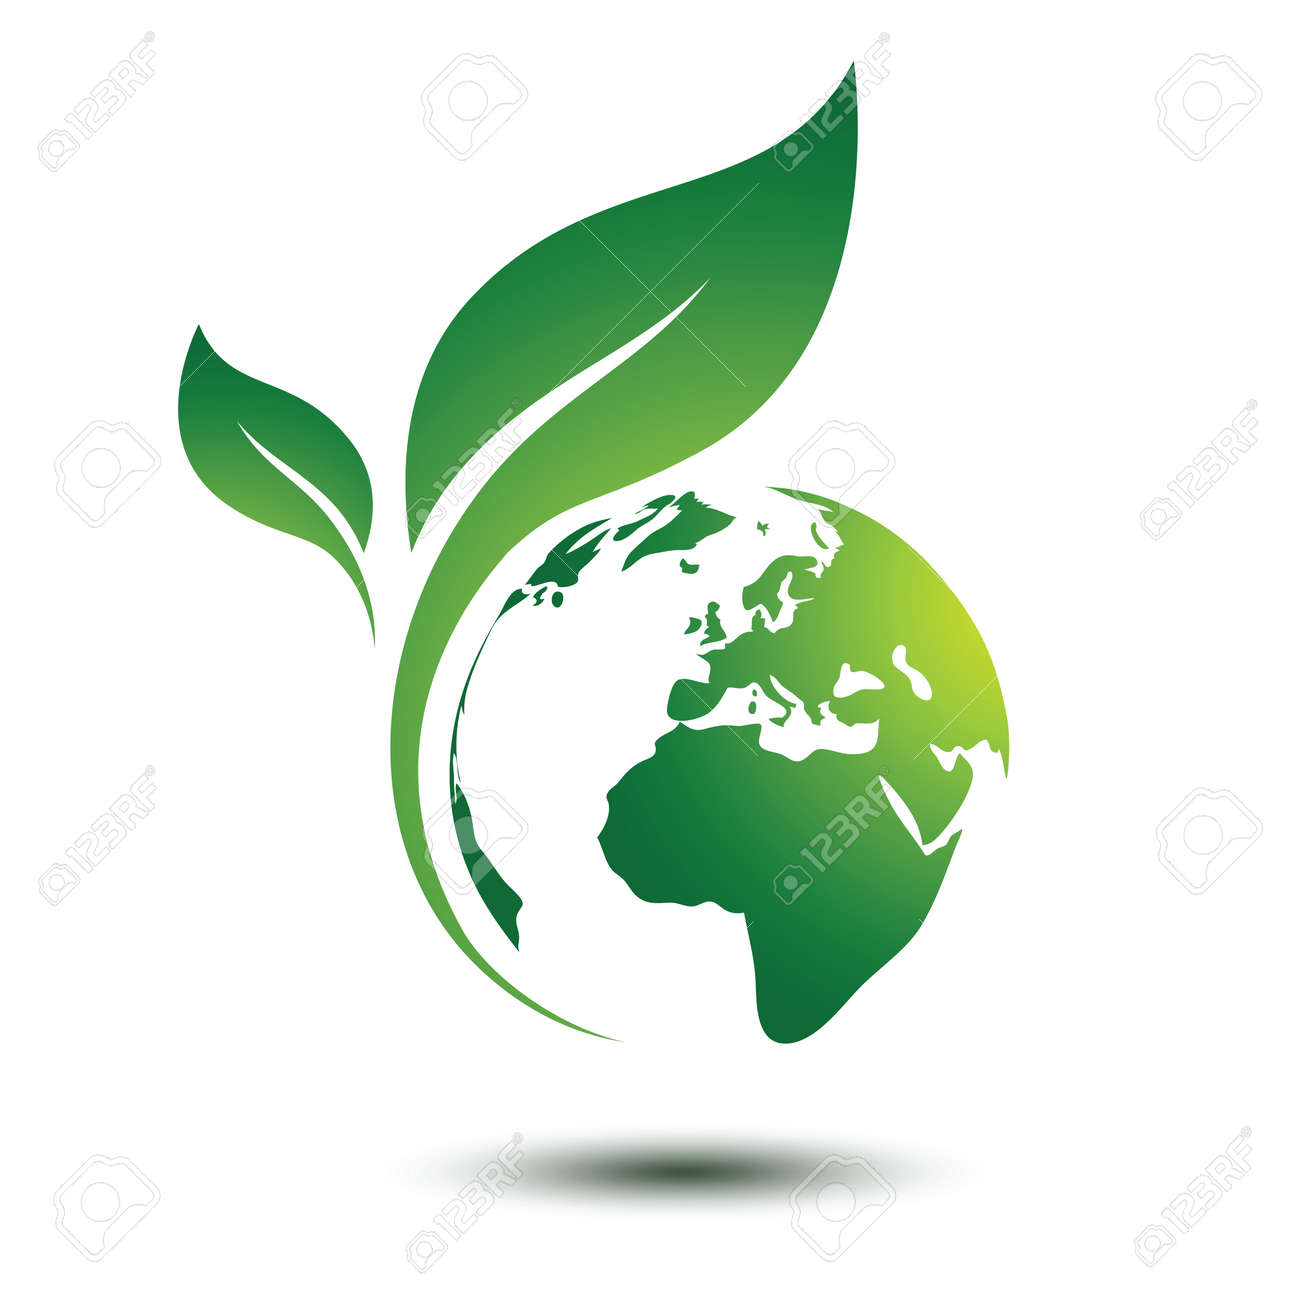 Green earth concept with leaves,vector illustration Stock Vector - 60133680